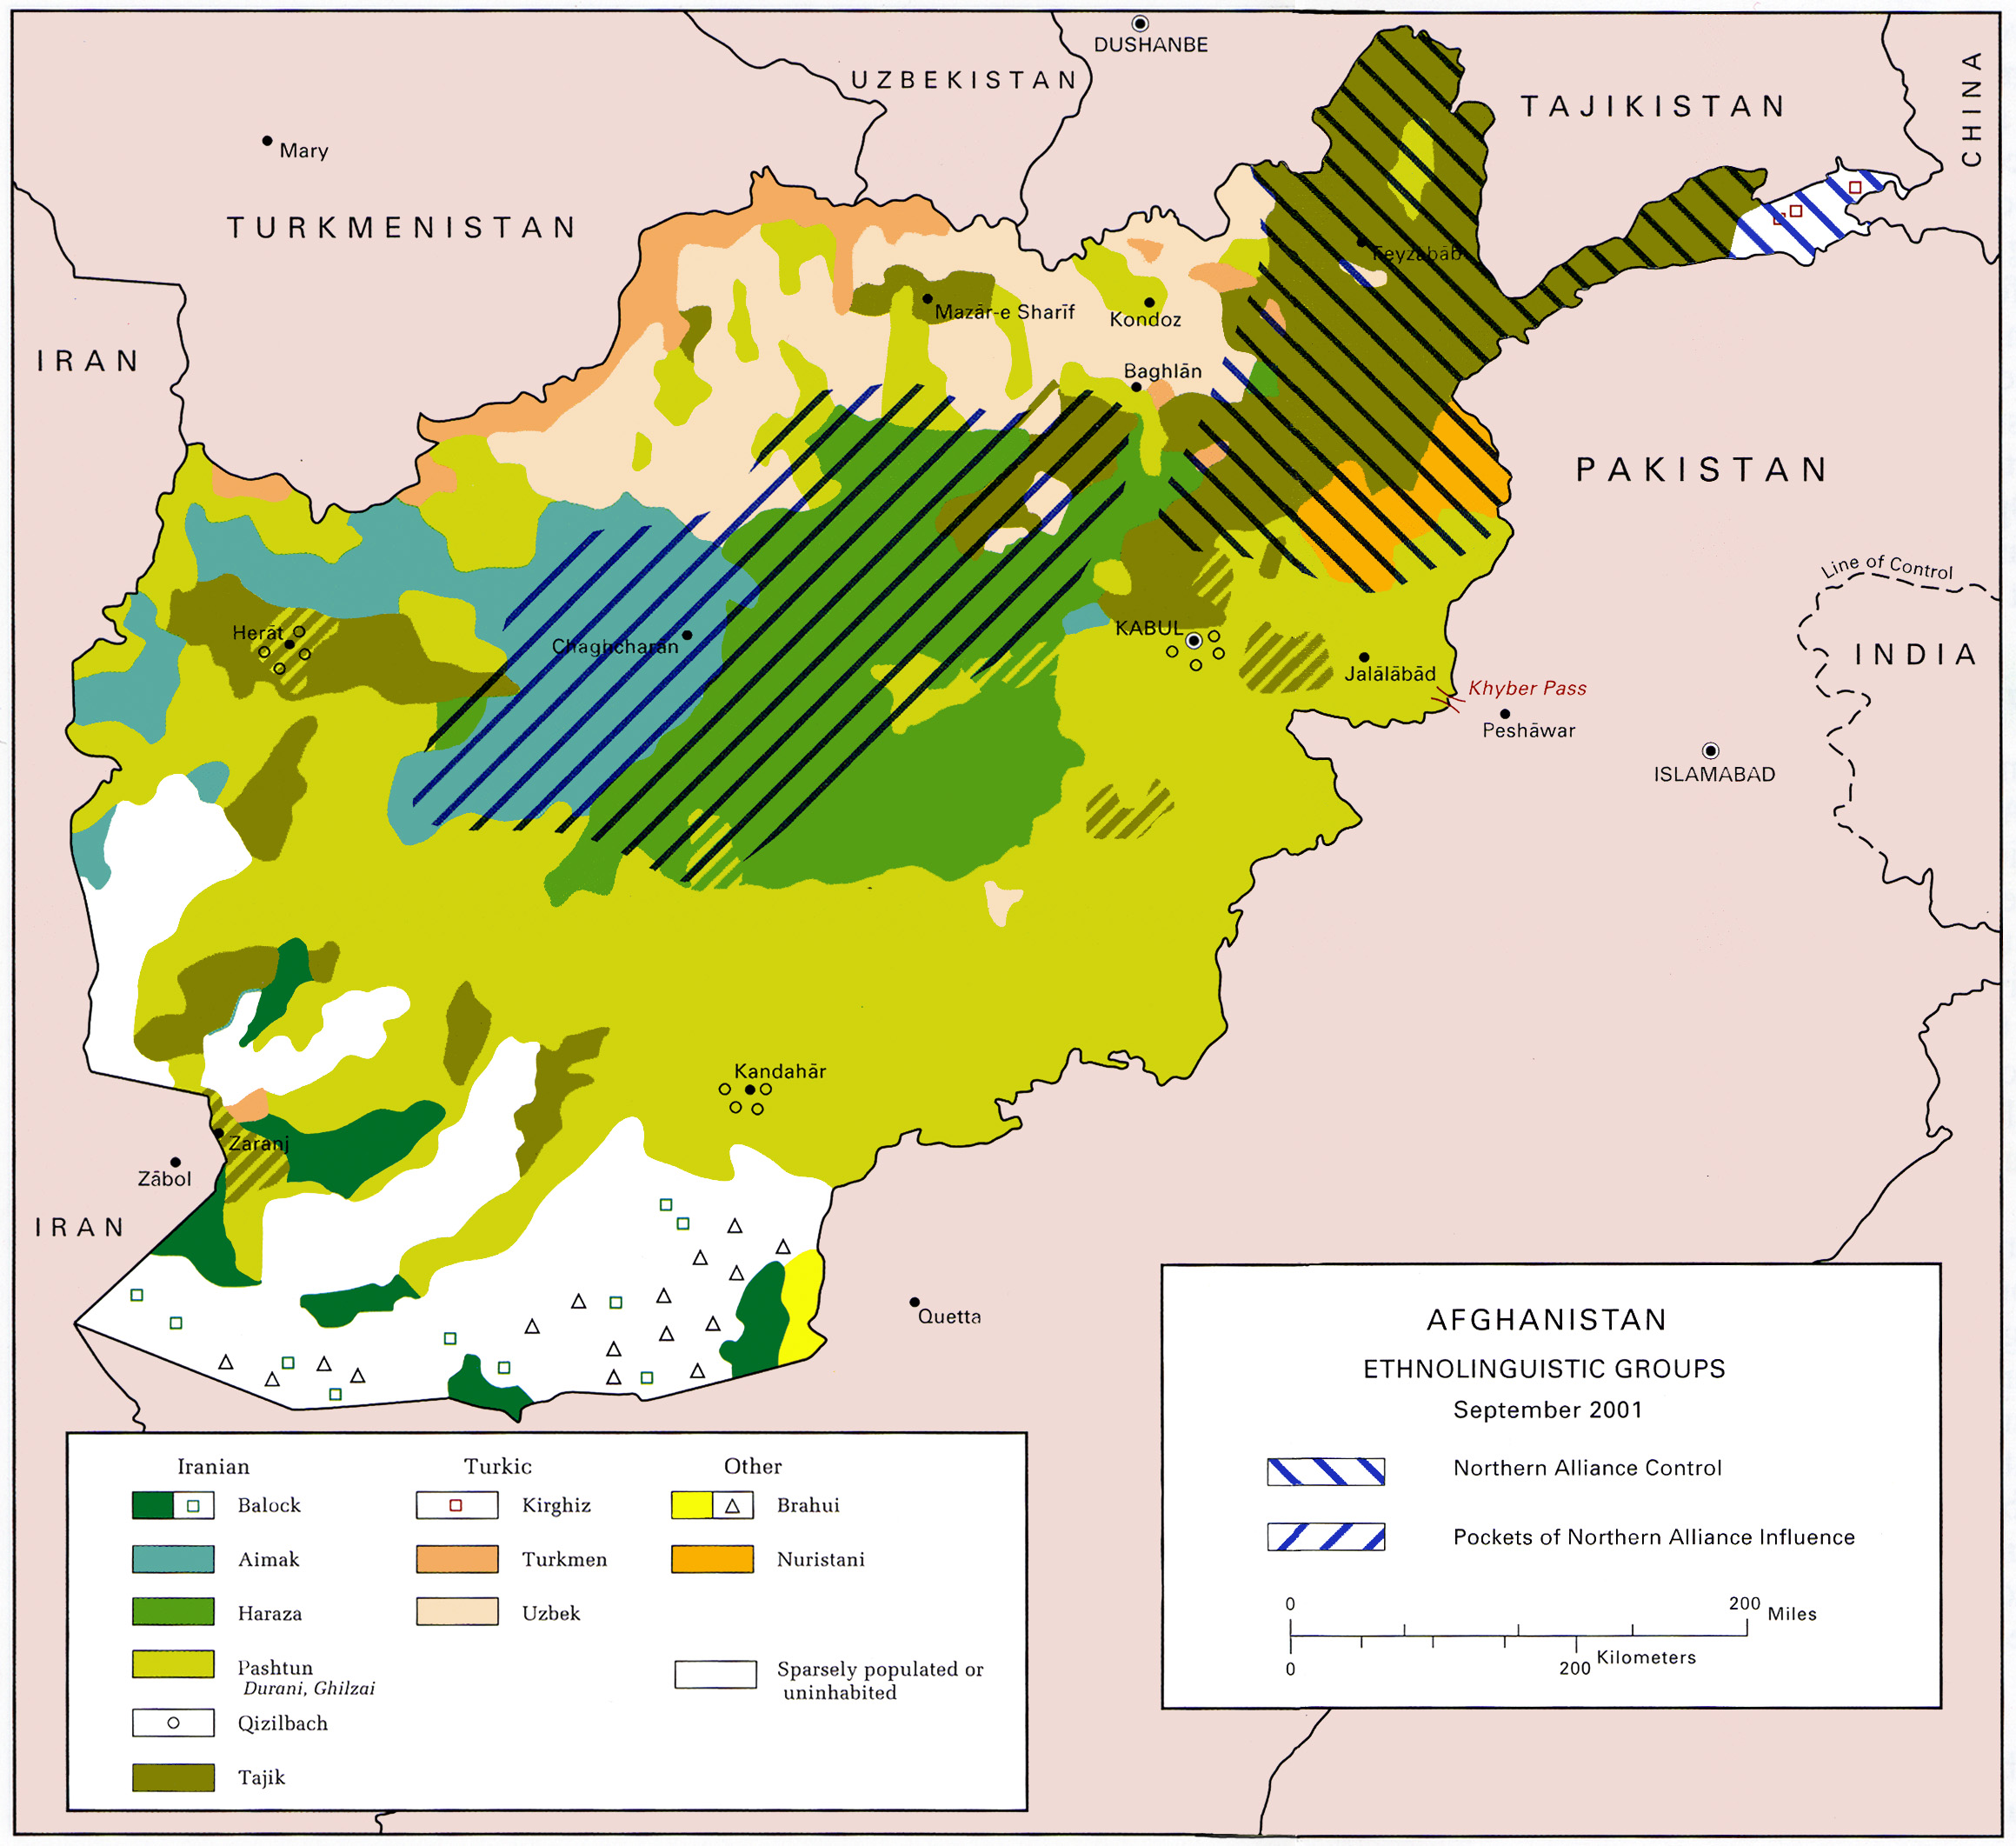 Fraction To Percentage Conversion Chart: Ethnic groups in Afghanistan - Wikipedia,Chart